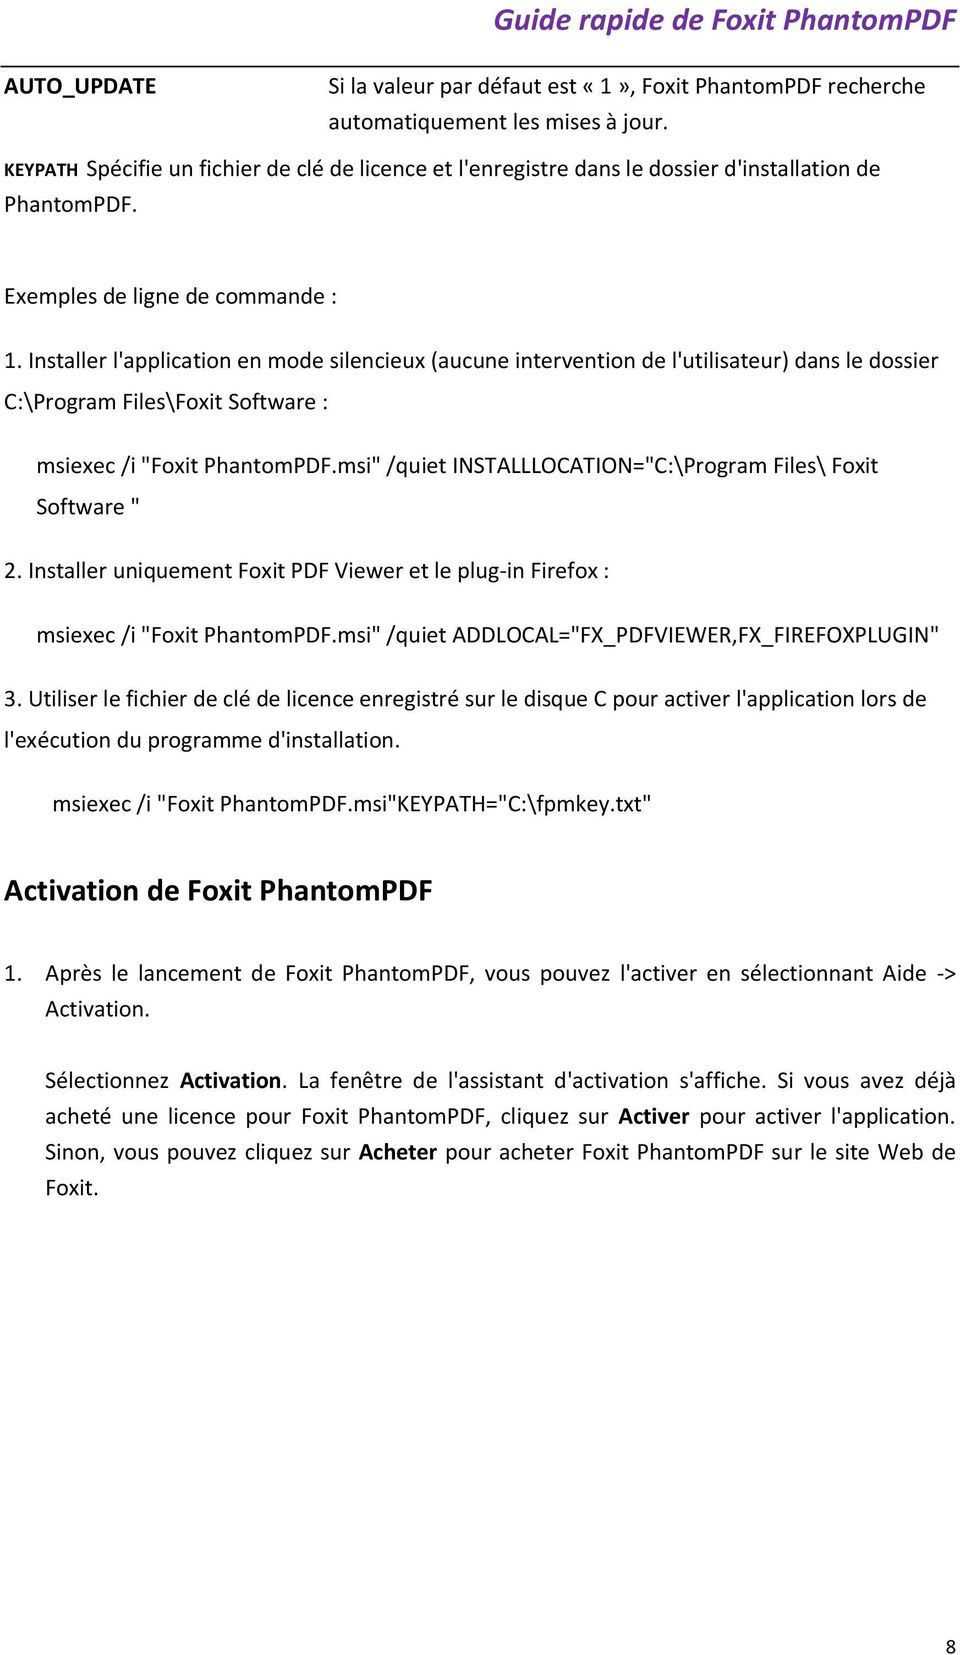 "Installer l'application en mode silencieux (aucune intervention de l'utilisateur) dans le dossier C:\Program Files\Foxit Software : msiexec /i ""Foxit PhantomPDF."